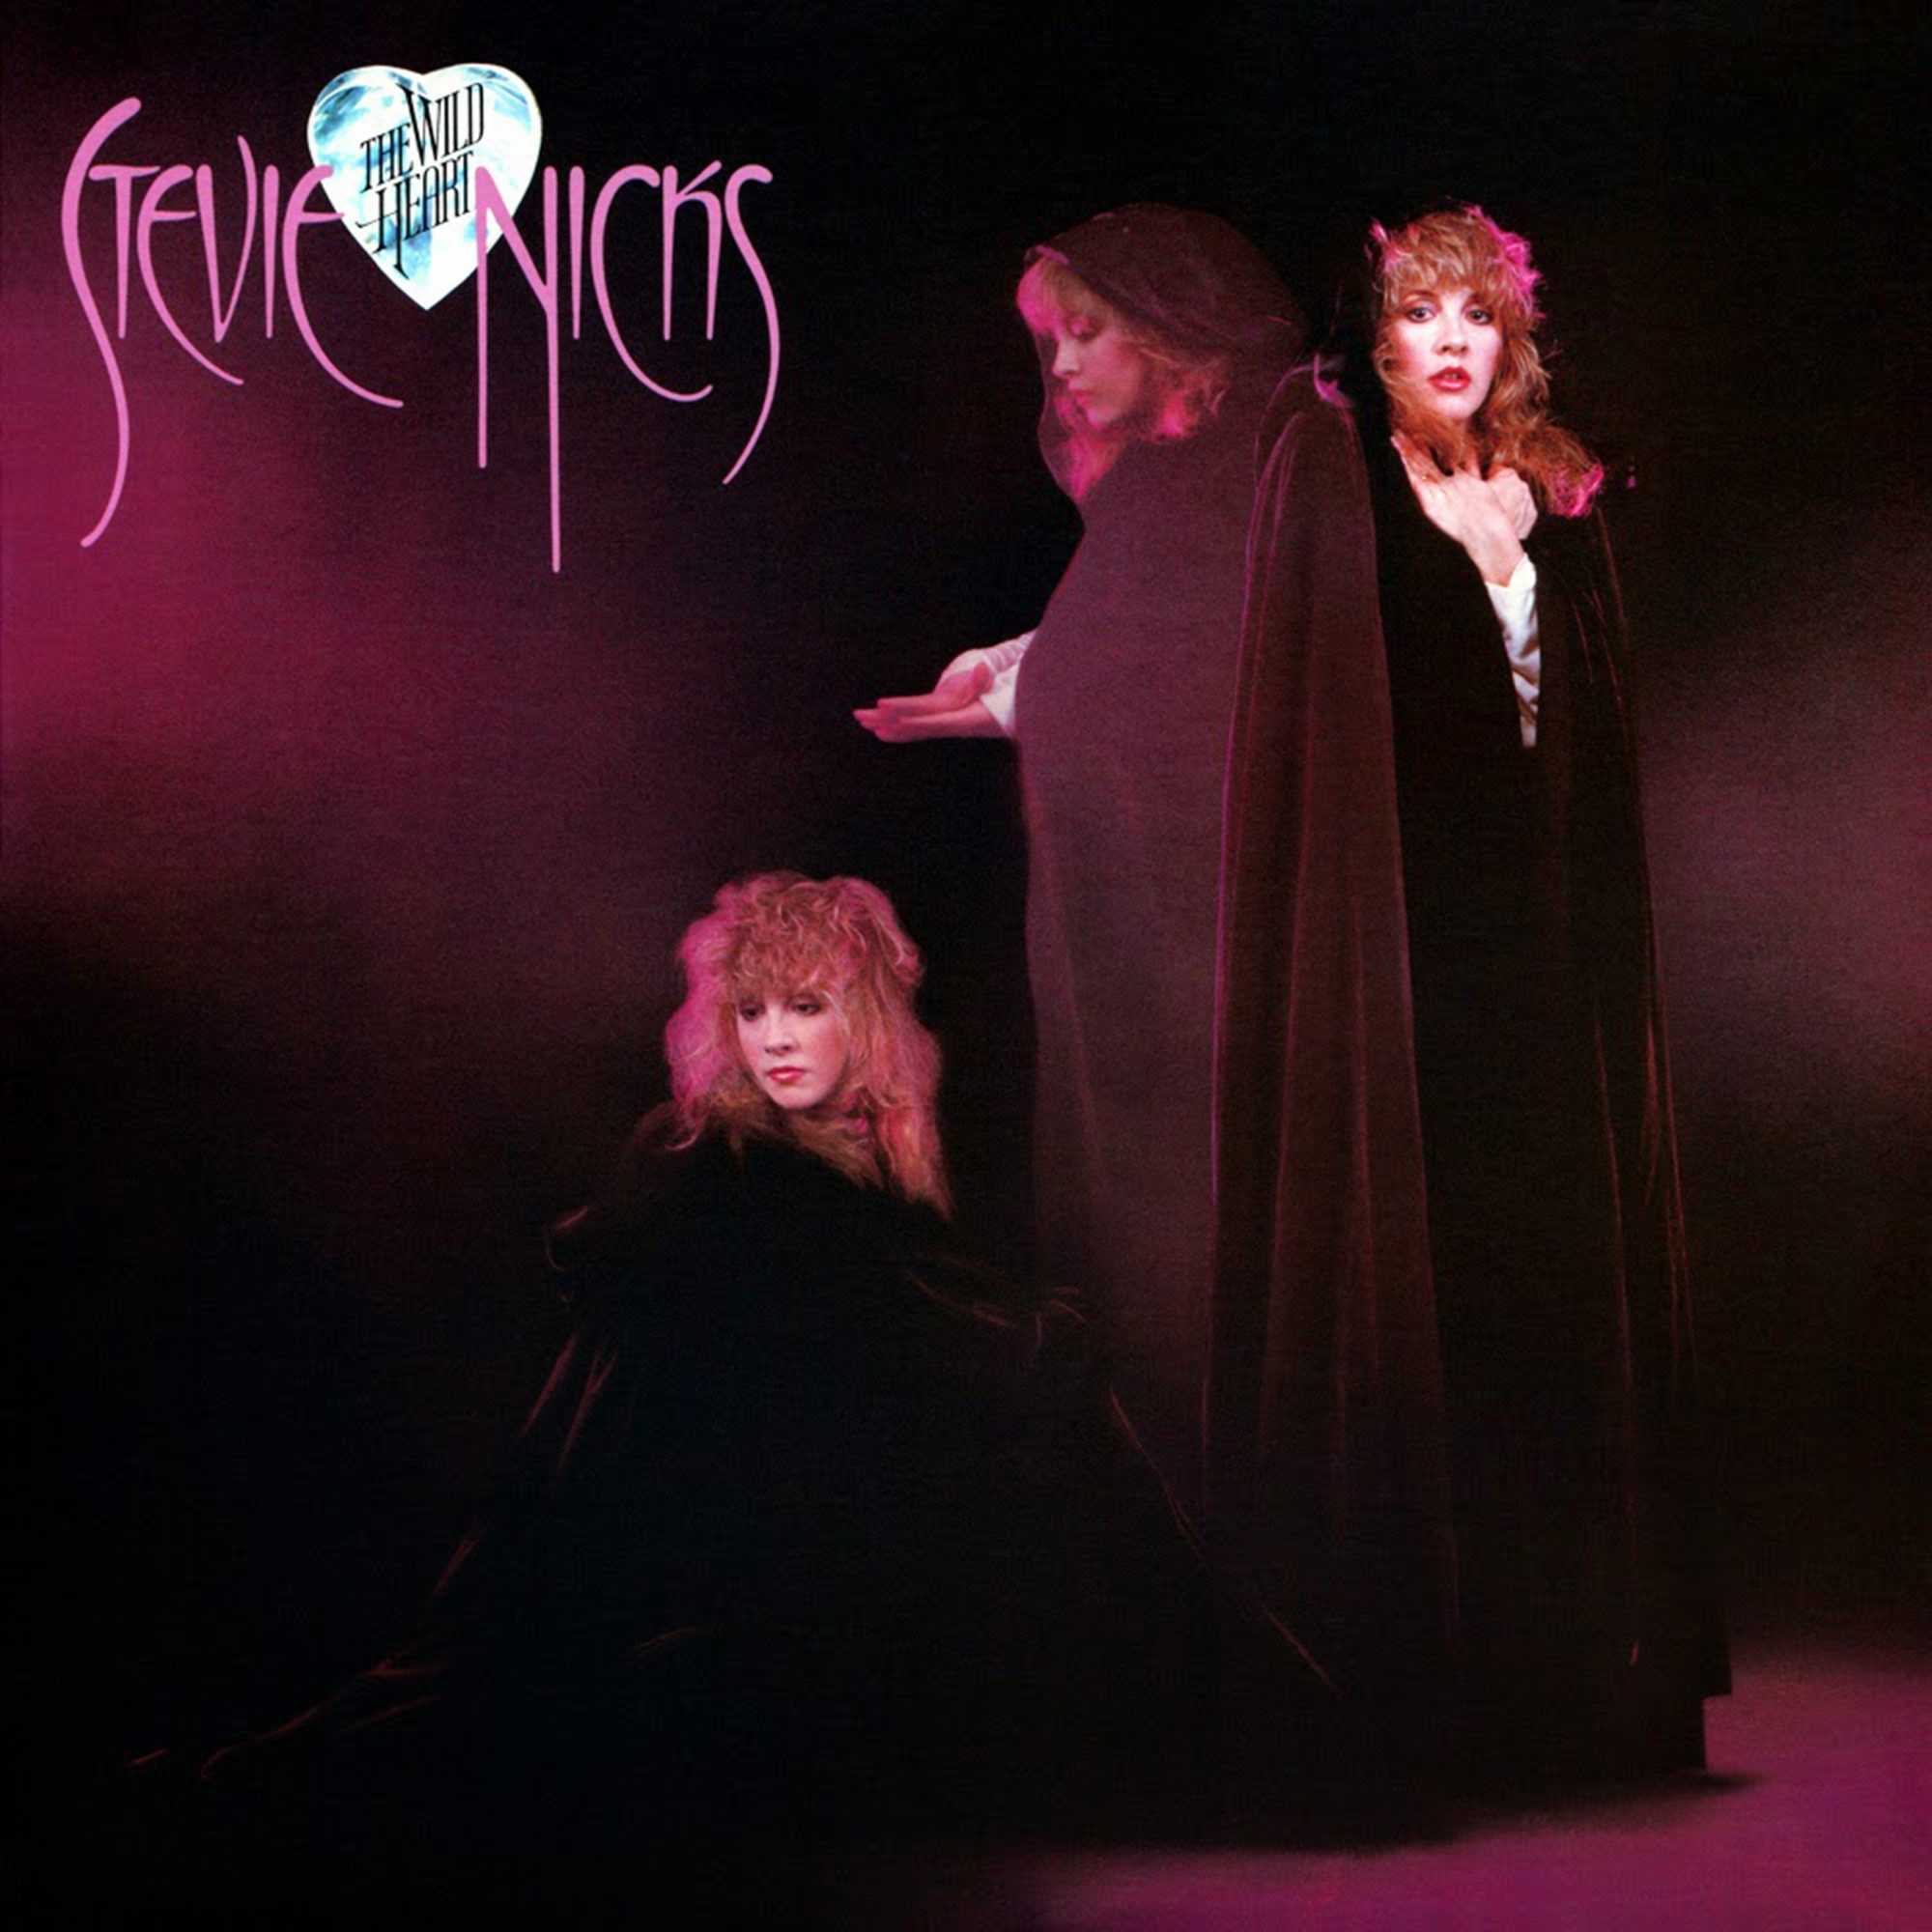 1983 – Stevie Nicks' Song